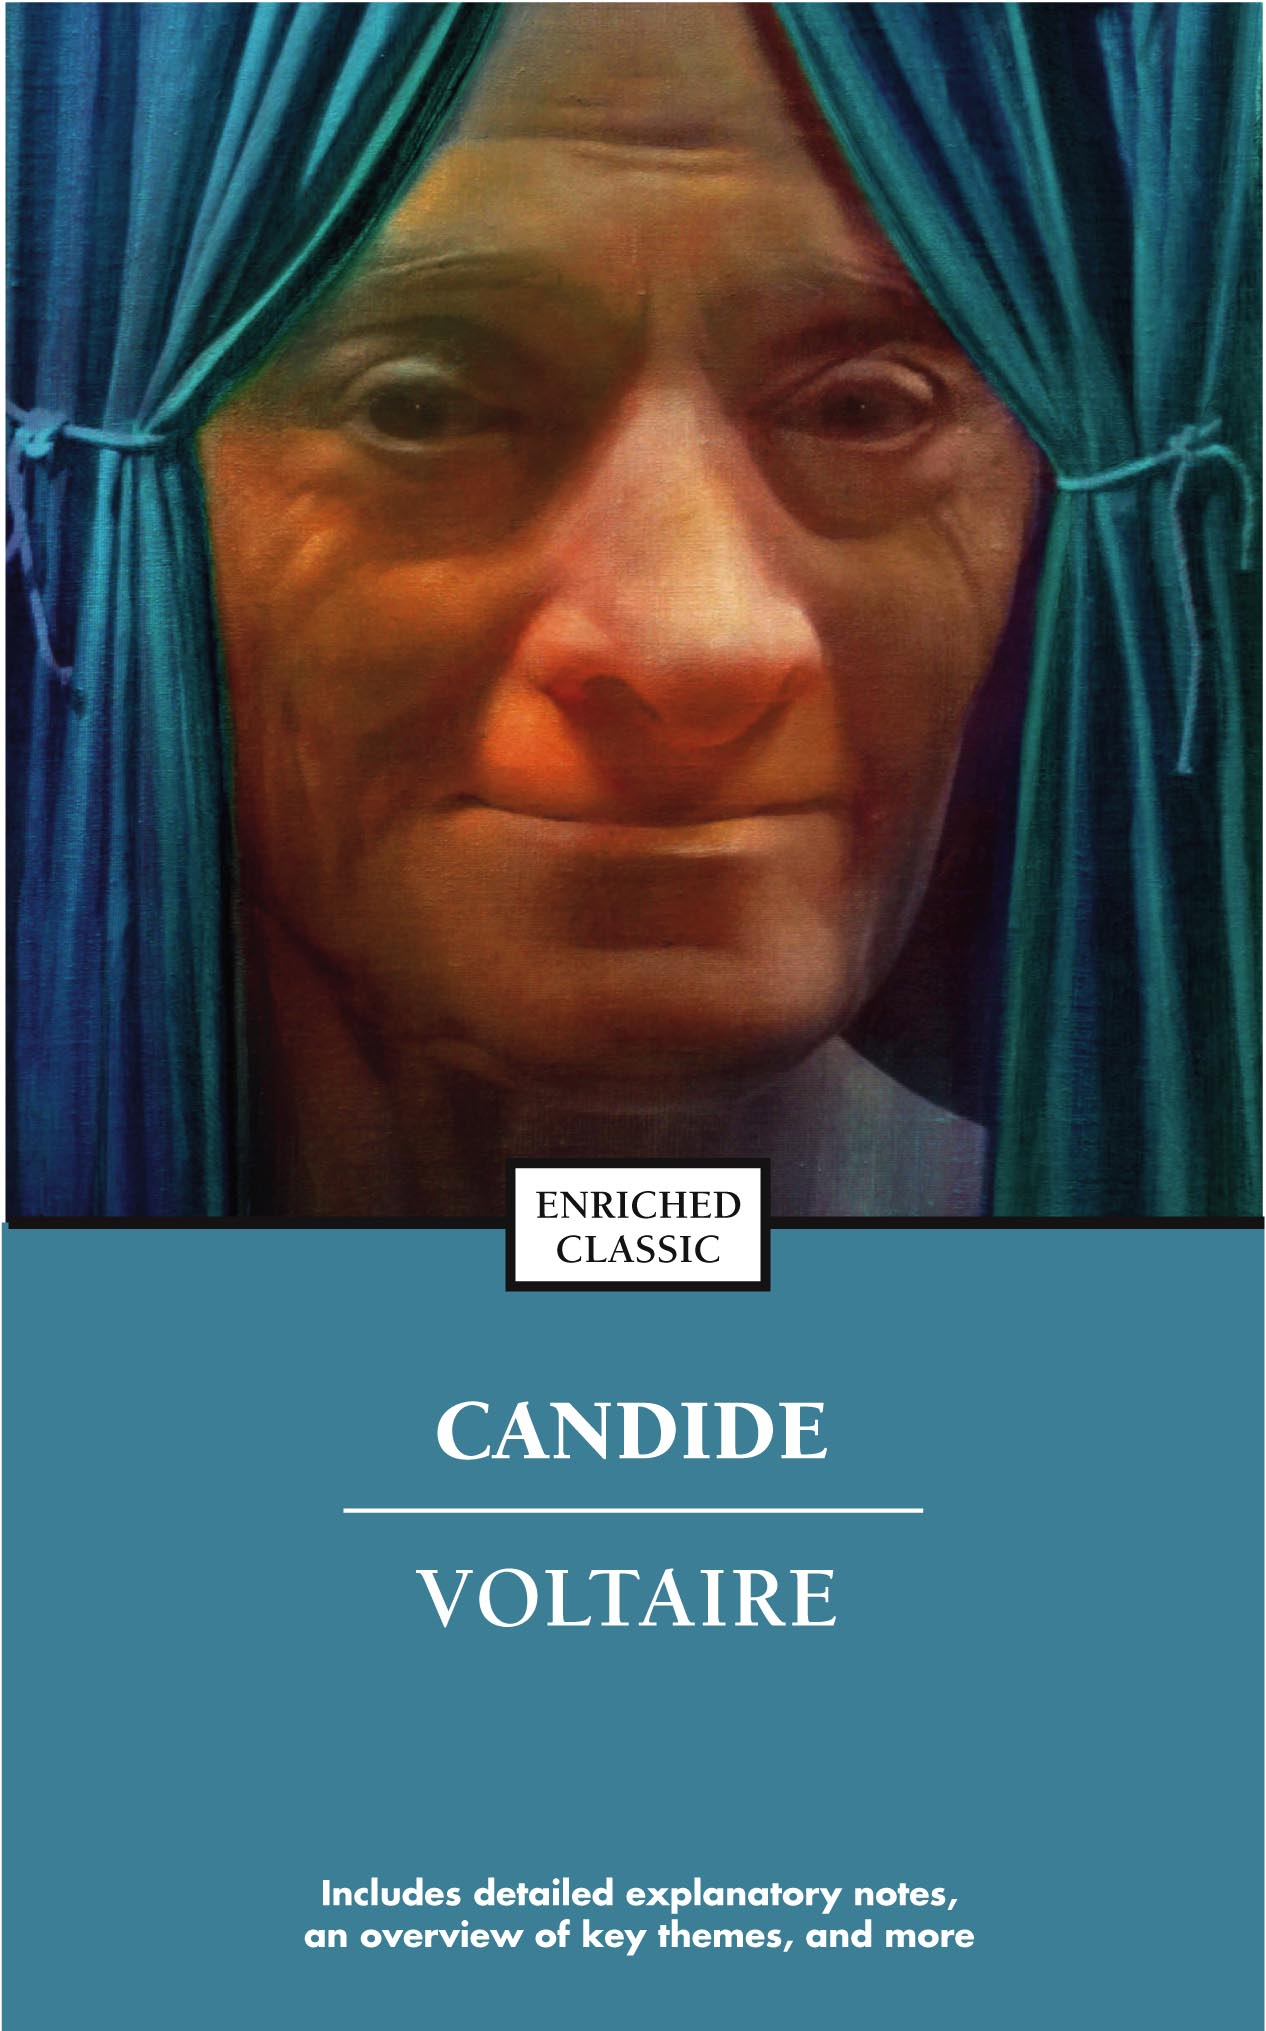 an overview of the innocent mans experiences in the novel candide by voltaire